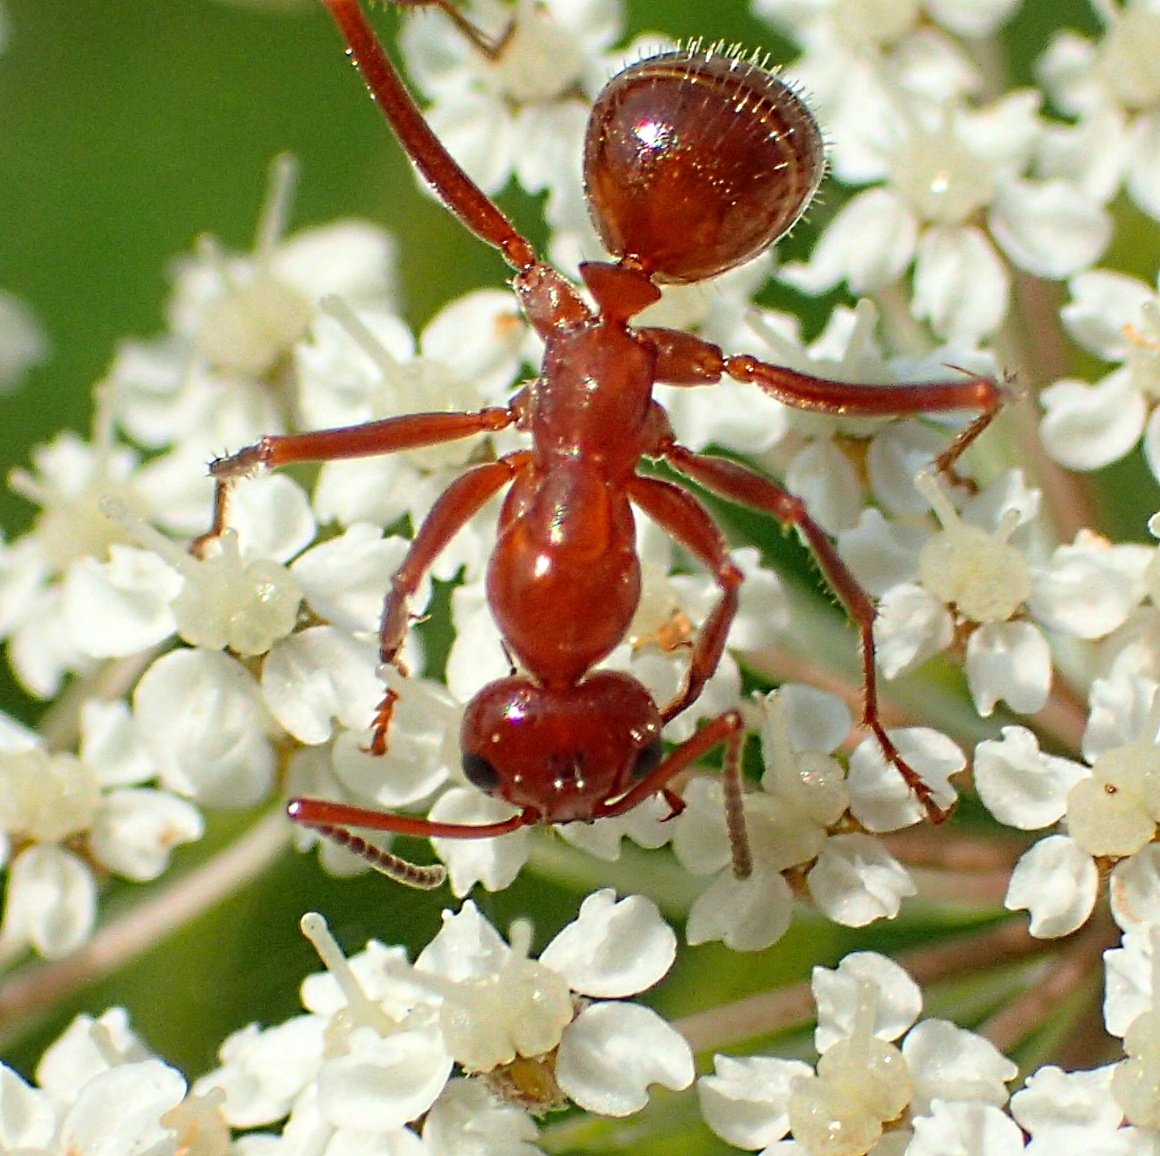 Ant on Queen Ann's Lace (1). Photo by Thomas Peace 2014